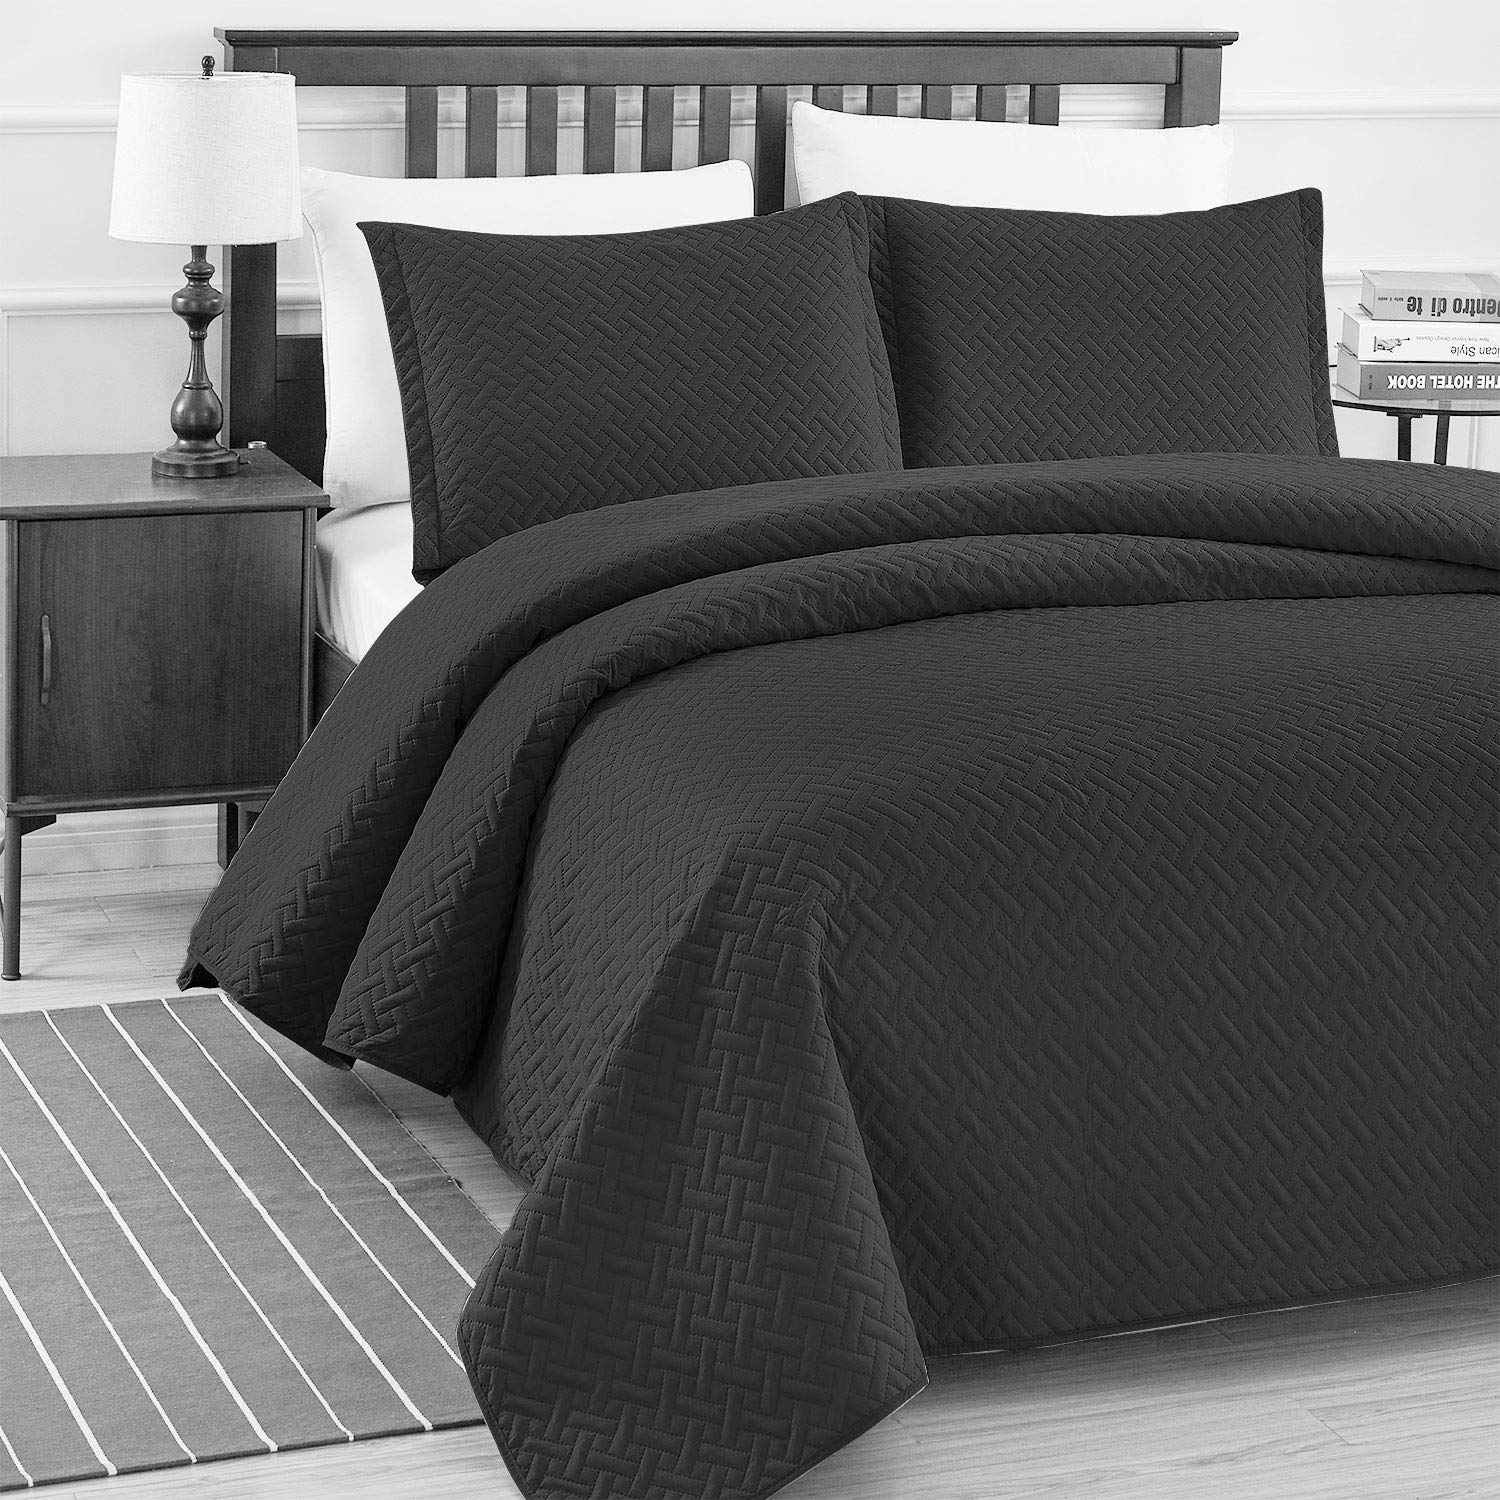 Basic Choice 3-piece Light weight Oversize Quilted Bedspread Coverlet Set - Black, Full/Queen